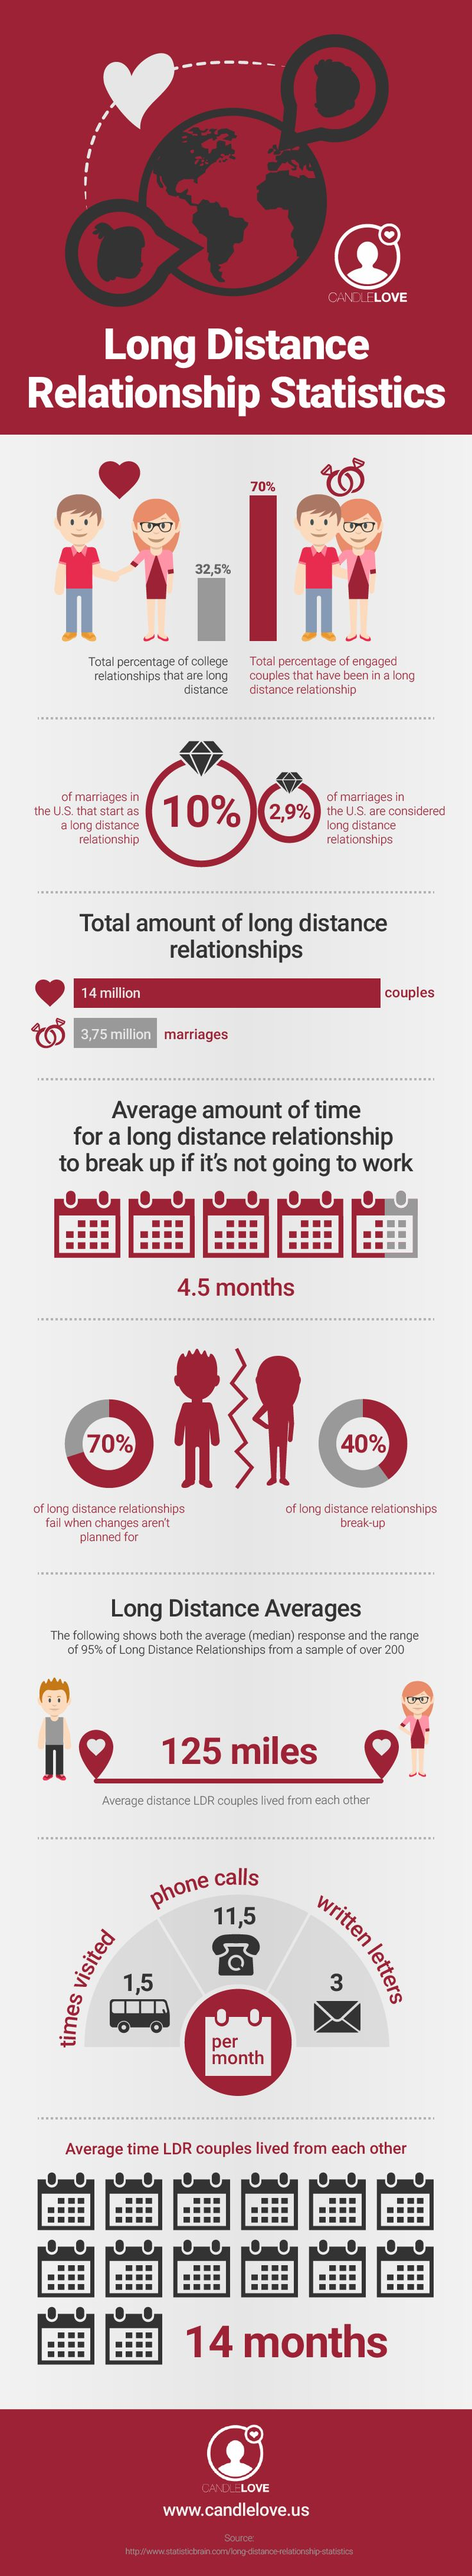 Long Distance Relationship Statistics #infographic #Love #Relationship